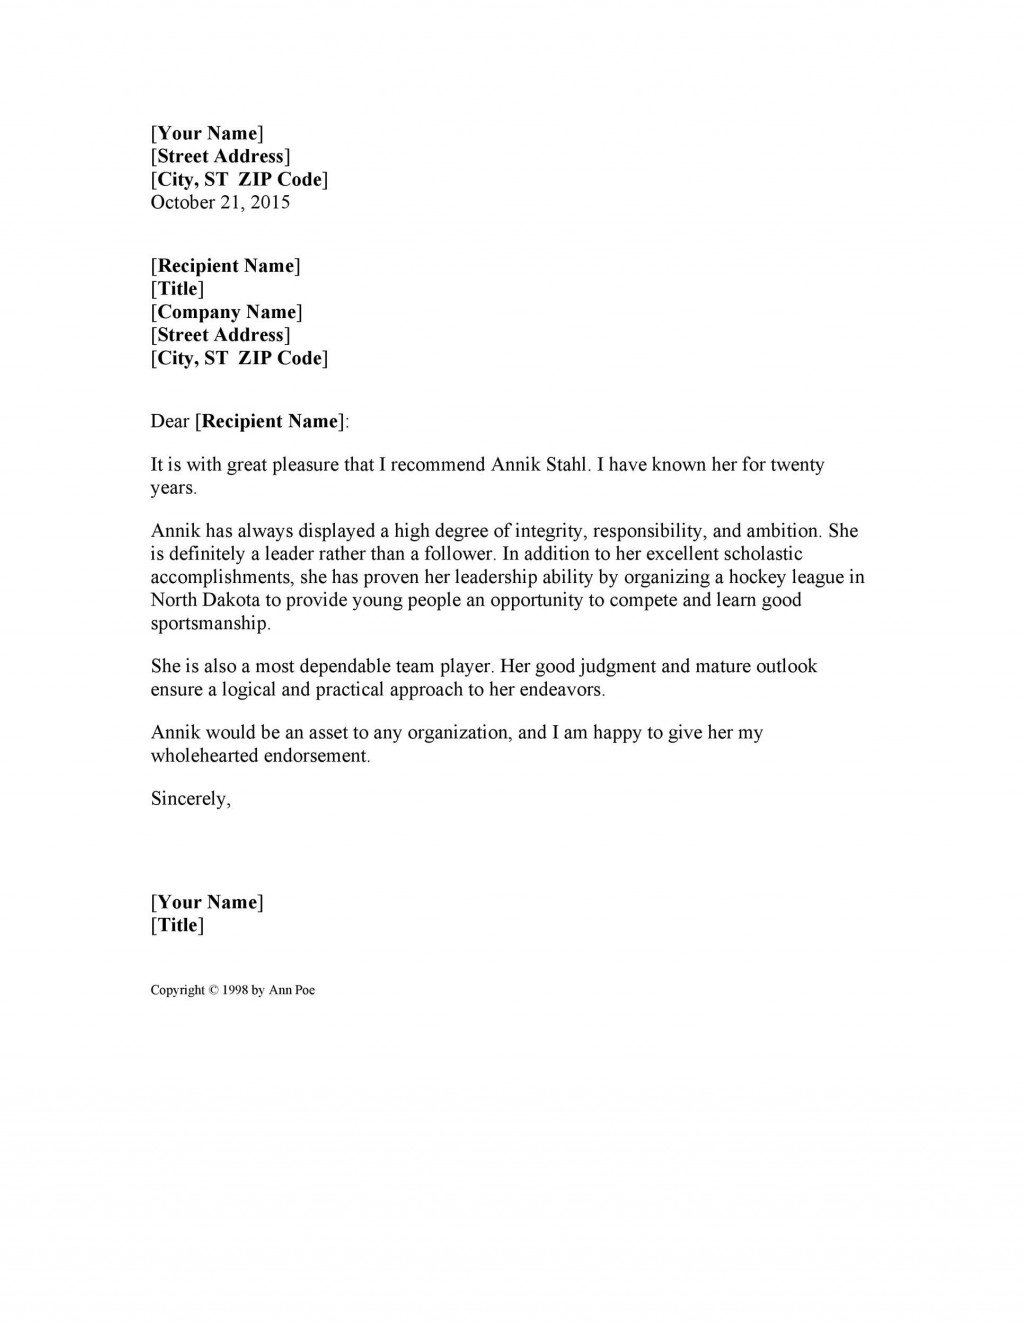 007 Awful Personal Letter Of Recommendation Template Highest Quality  Sample Character Reference AssistantLarge